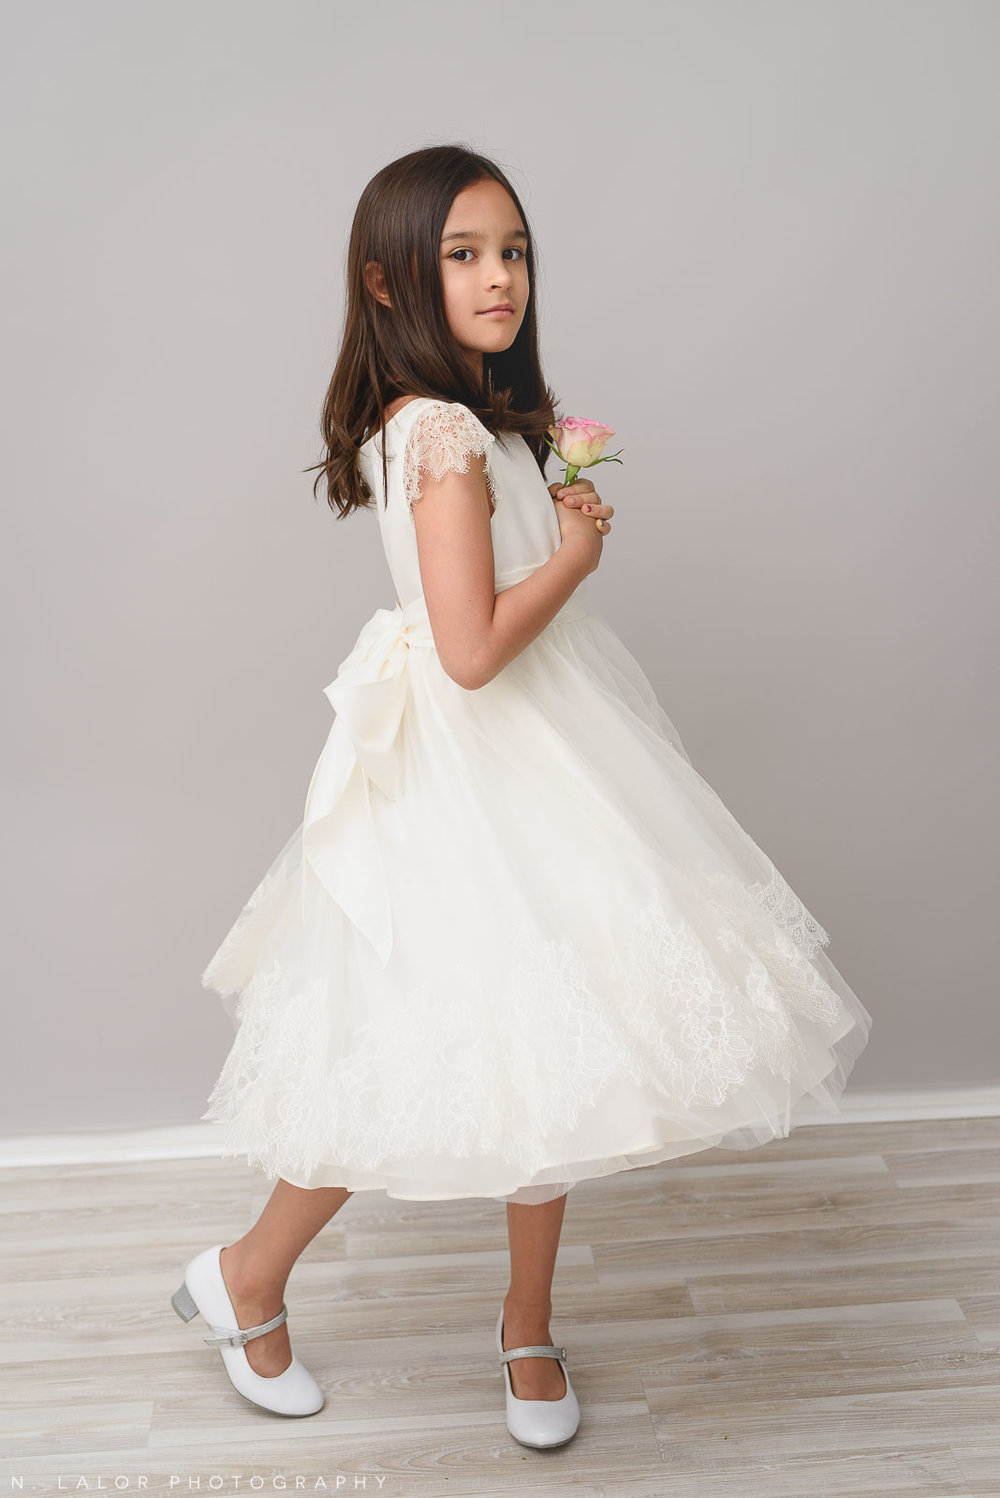 Photograph of an 8-year old girl in a white dress. Studio portrait by N. Lalor Photography. Greenwich, Connecticut.